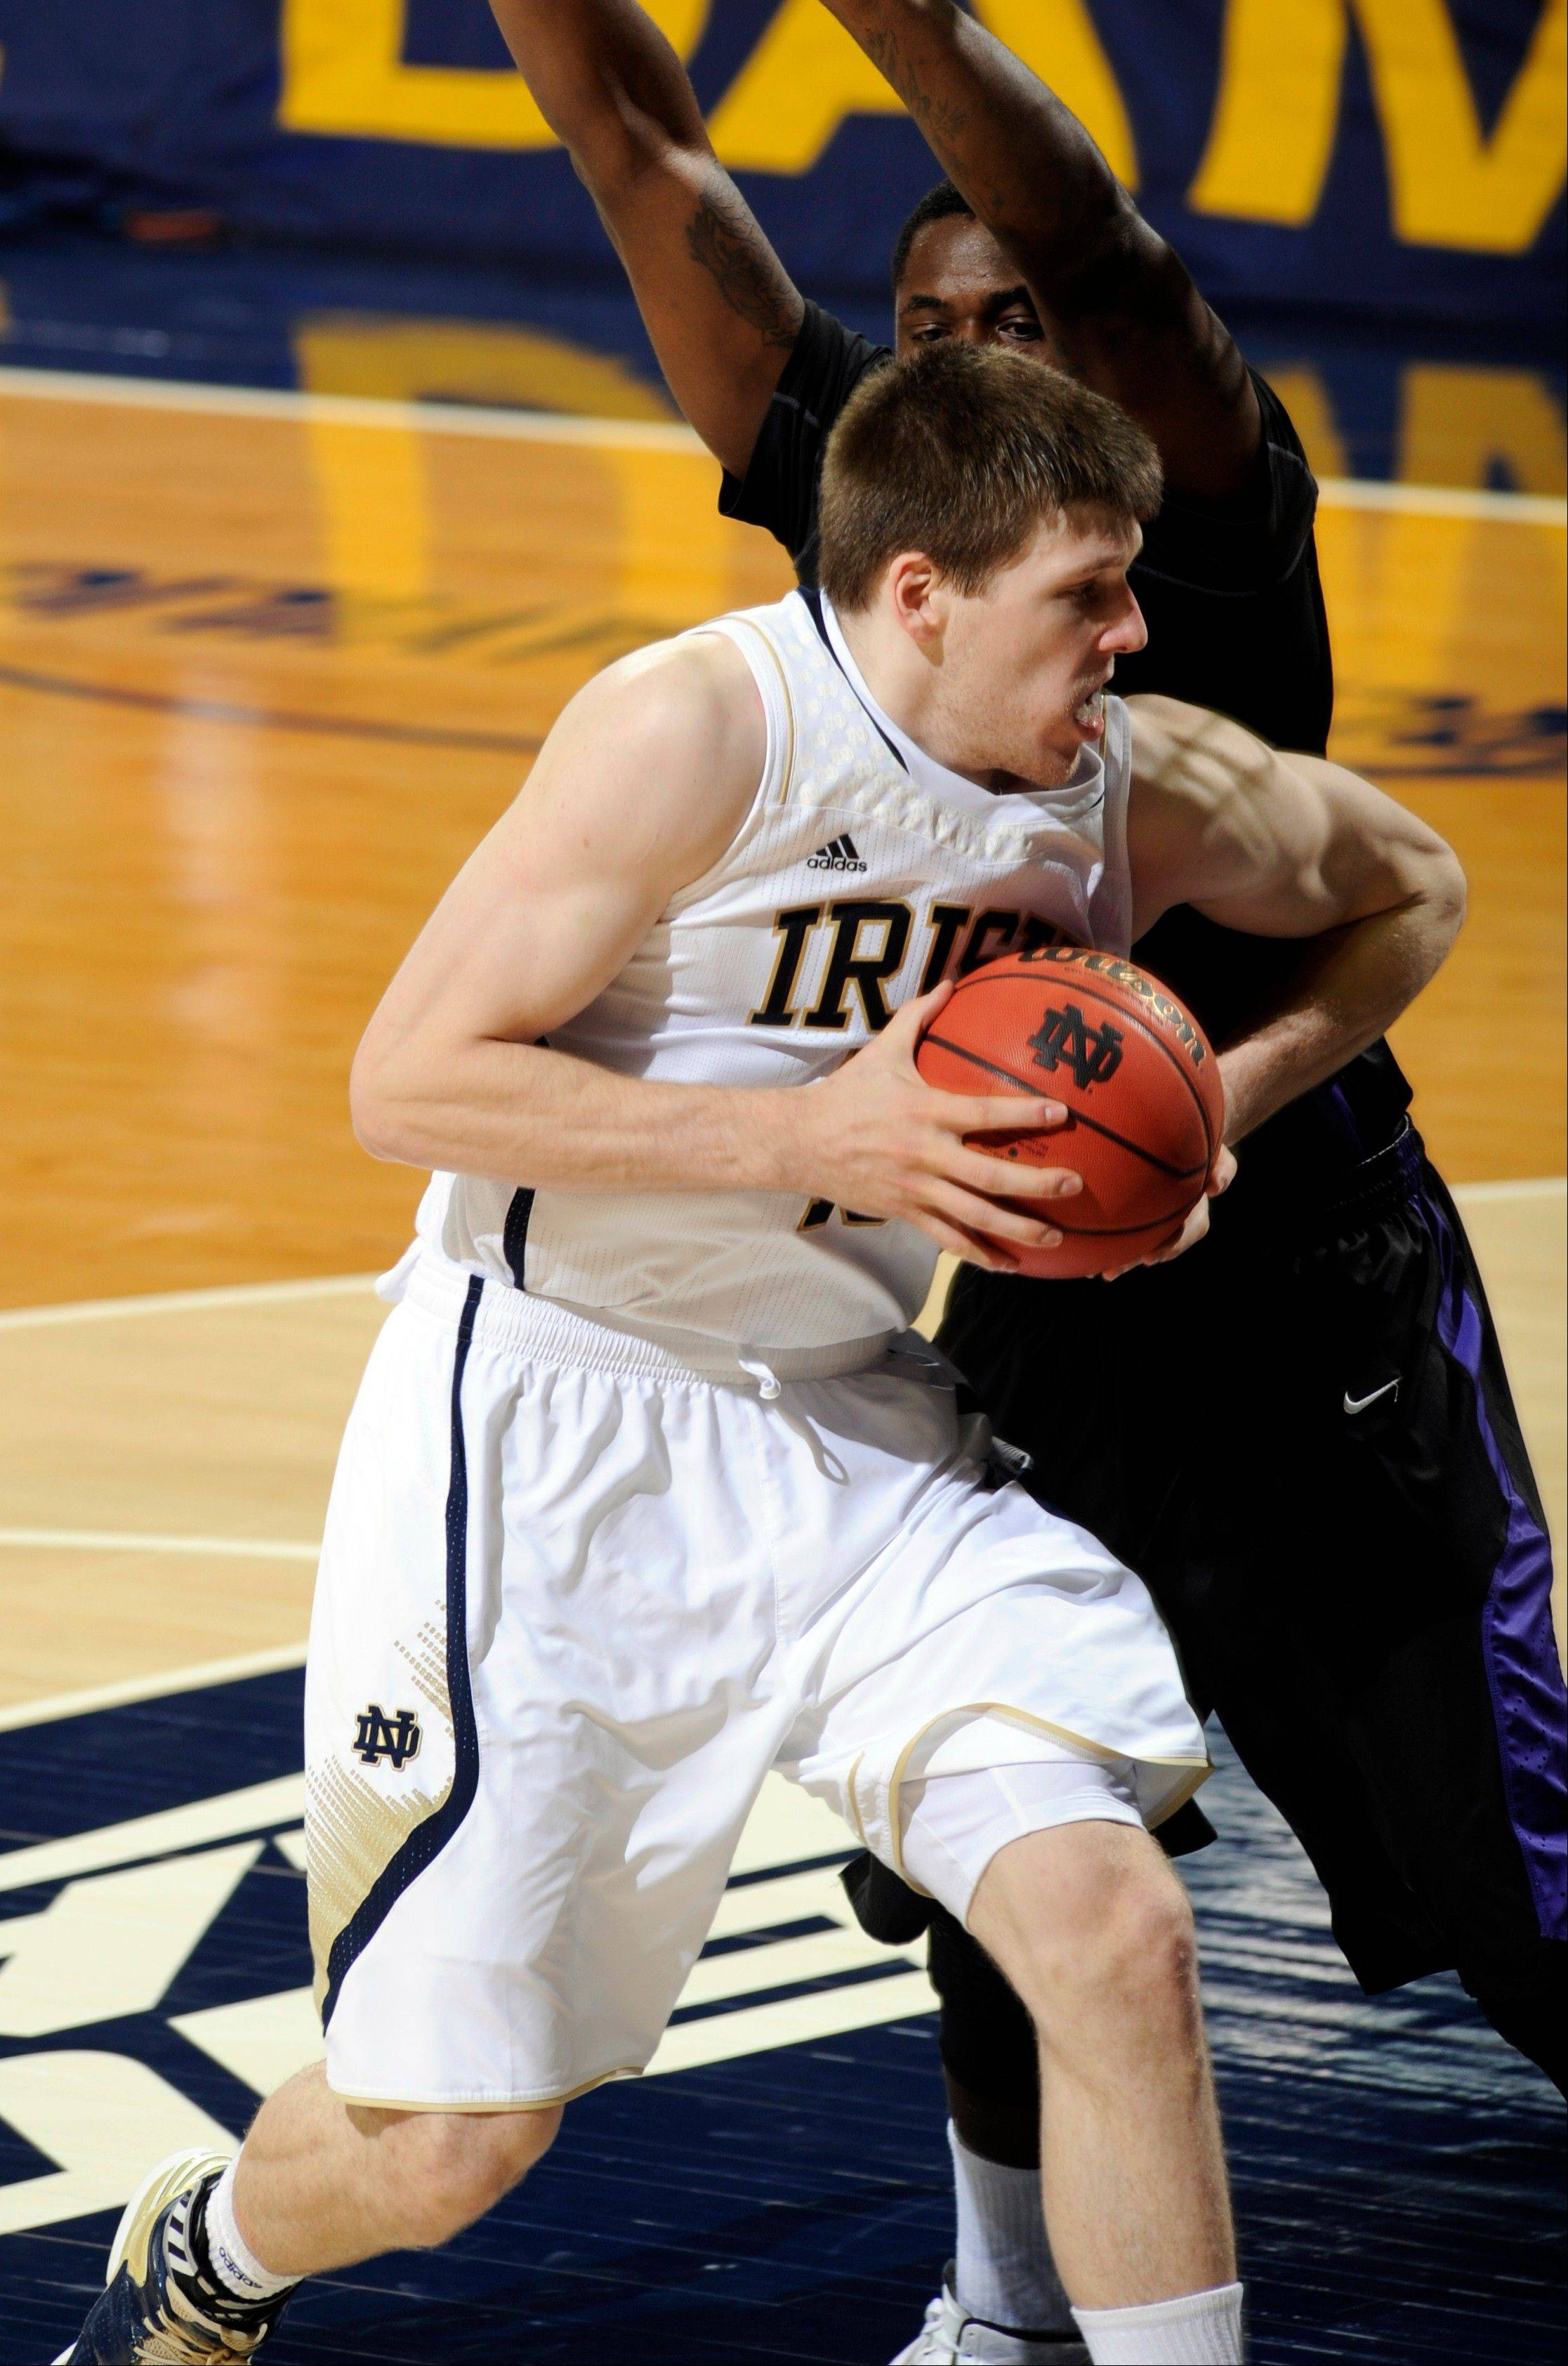 Notre Dame forward Jack Cooley, front, drives the lane Friday during the second half against Niagara in South Bend, Ind. Notre Dame won 89-67 with Cooley leading all scorers with 24 points.